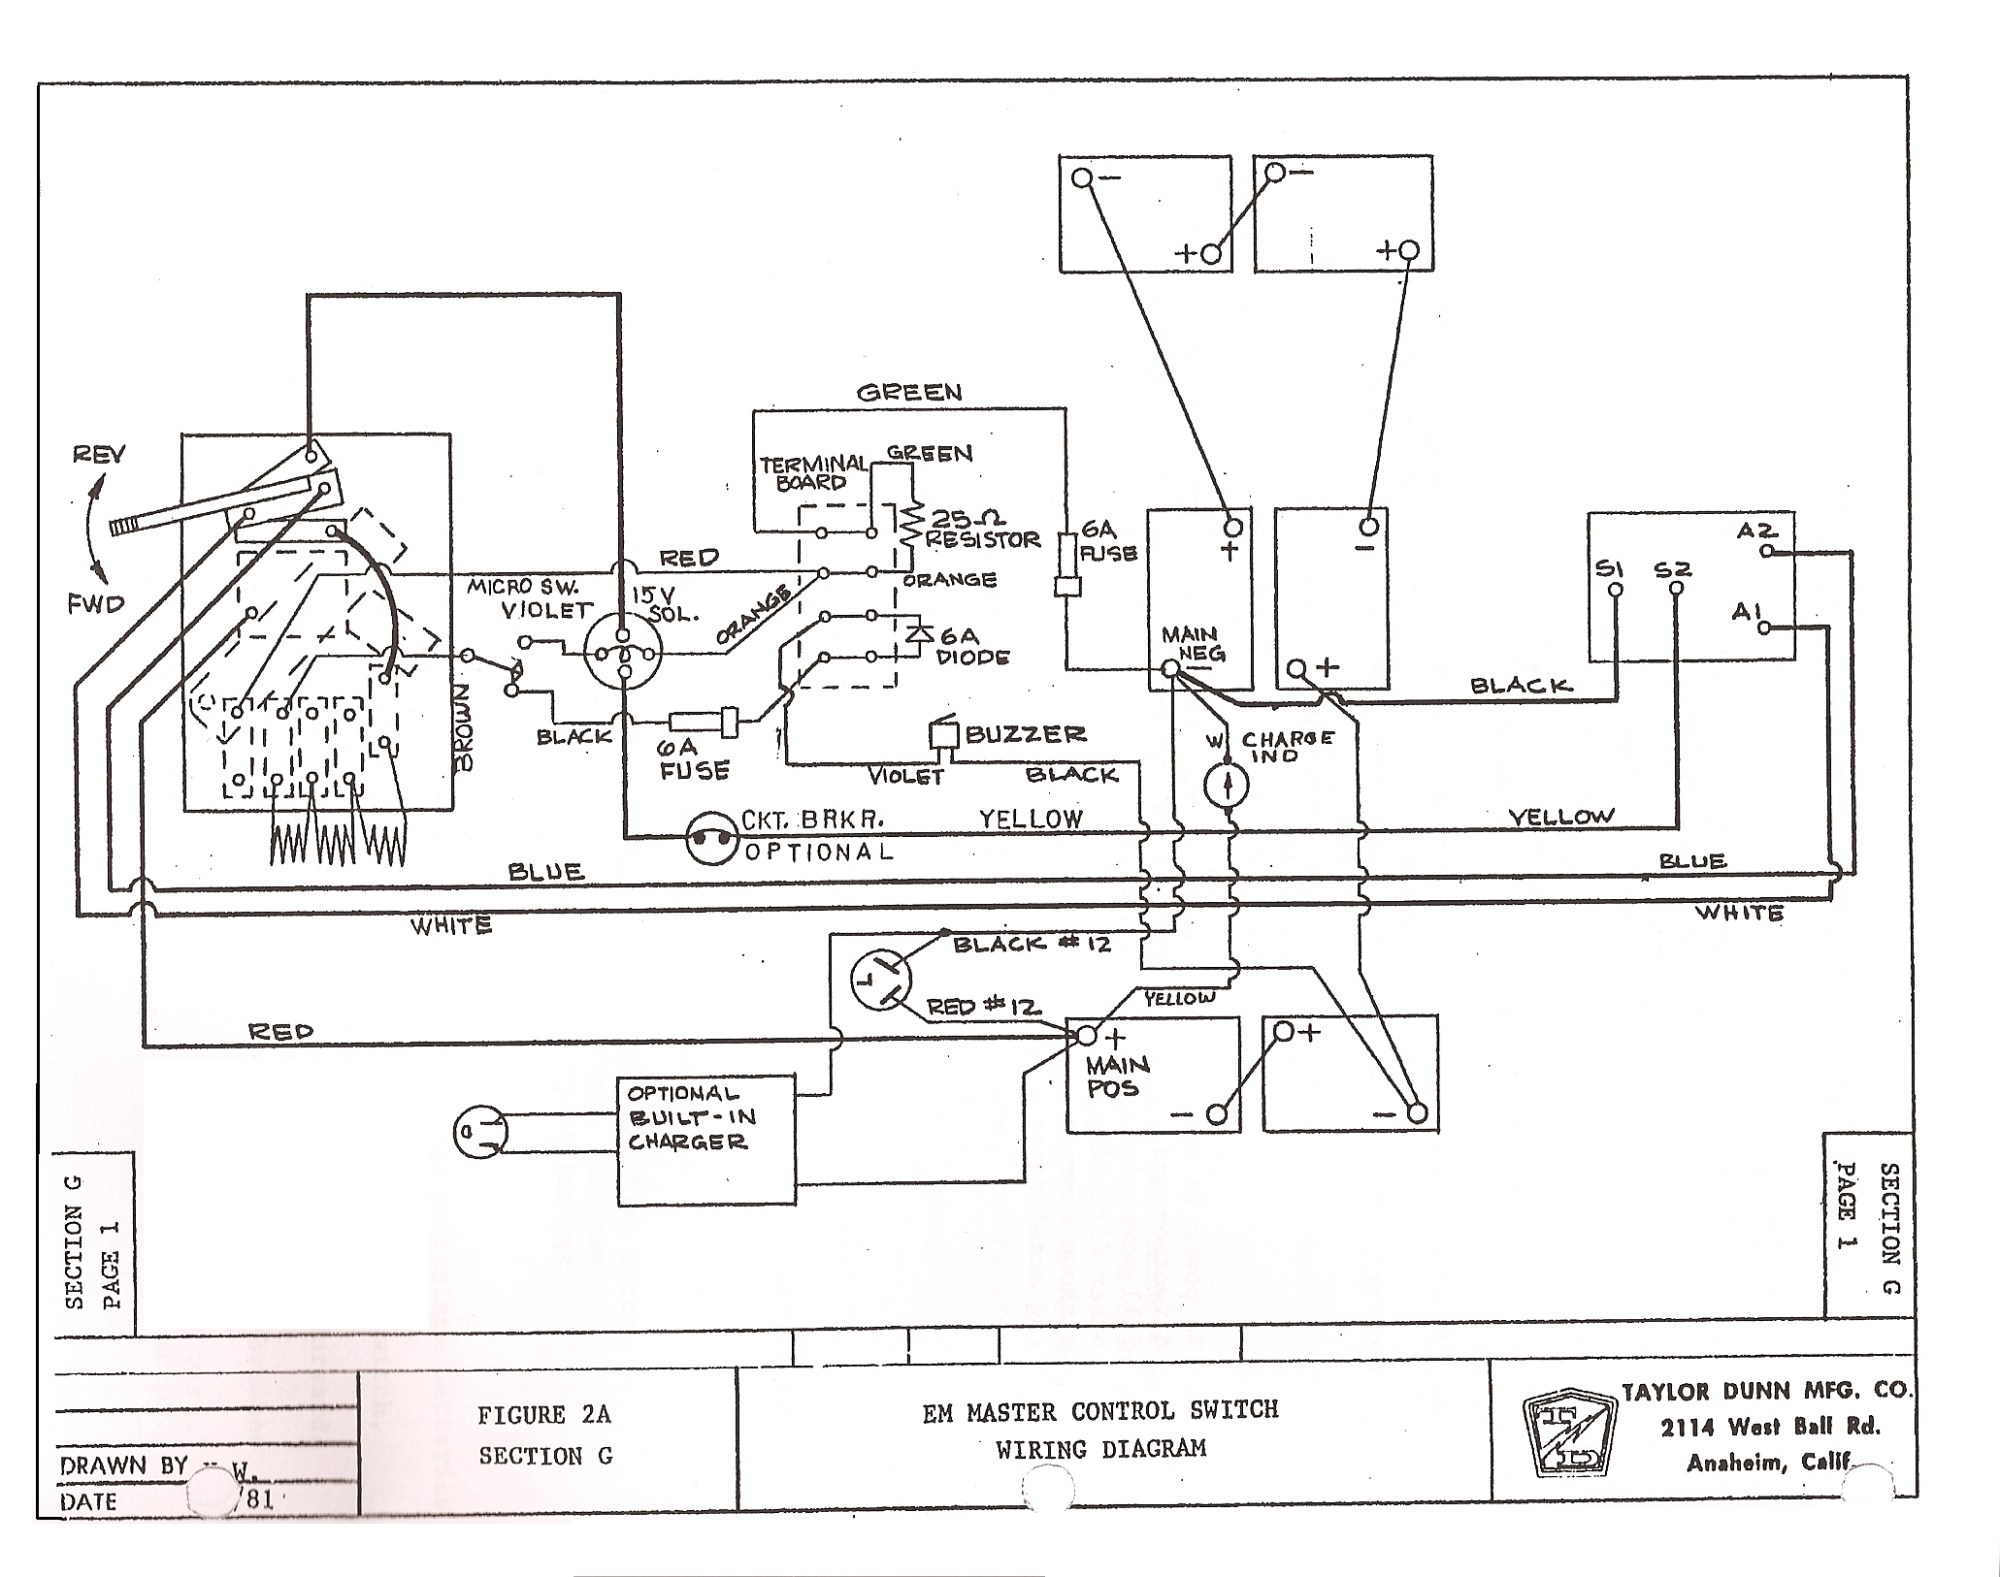 hight resolution of taylor dunn electric cart 36 volt wiring diagram wiring diagram split 36 volt taylor dunn wiring